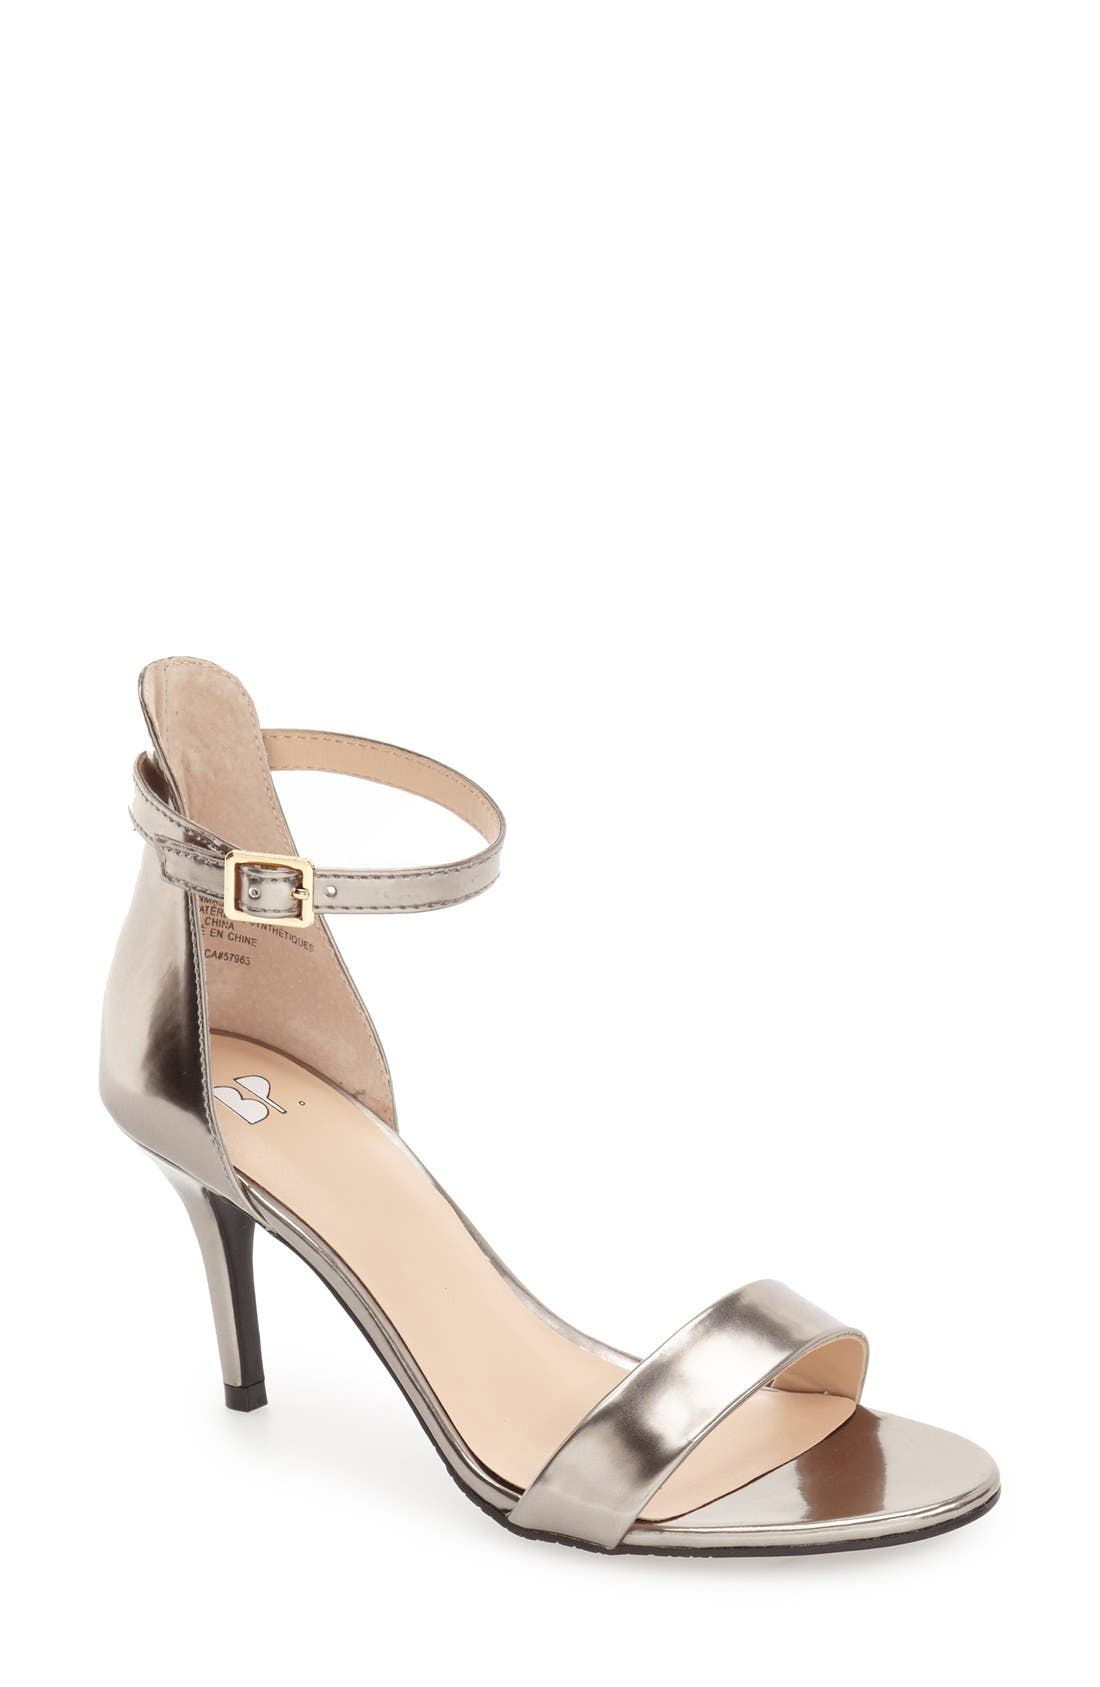 'Luminate' Open Toe Dress Sandal,                             Main thumbnail 21, color,